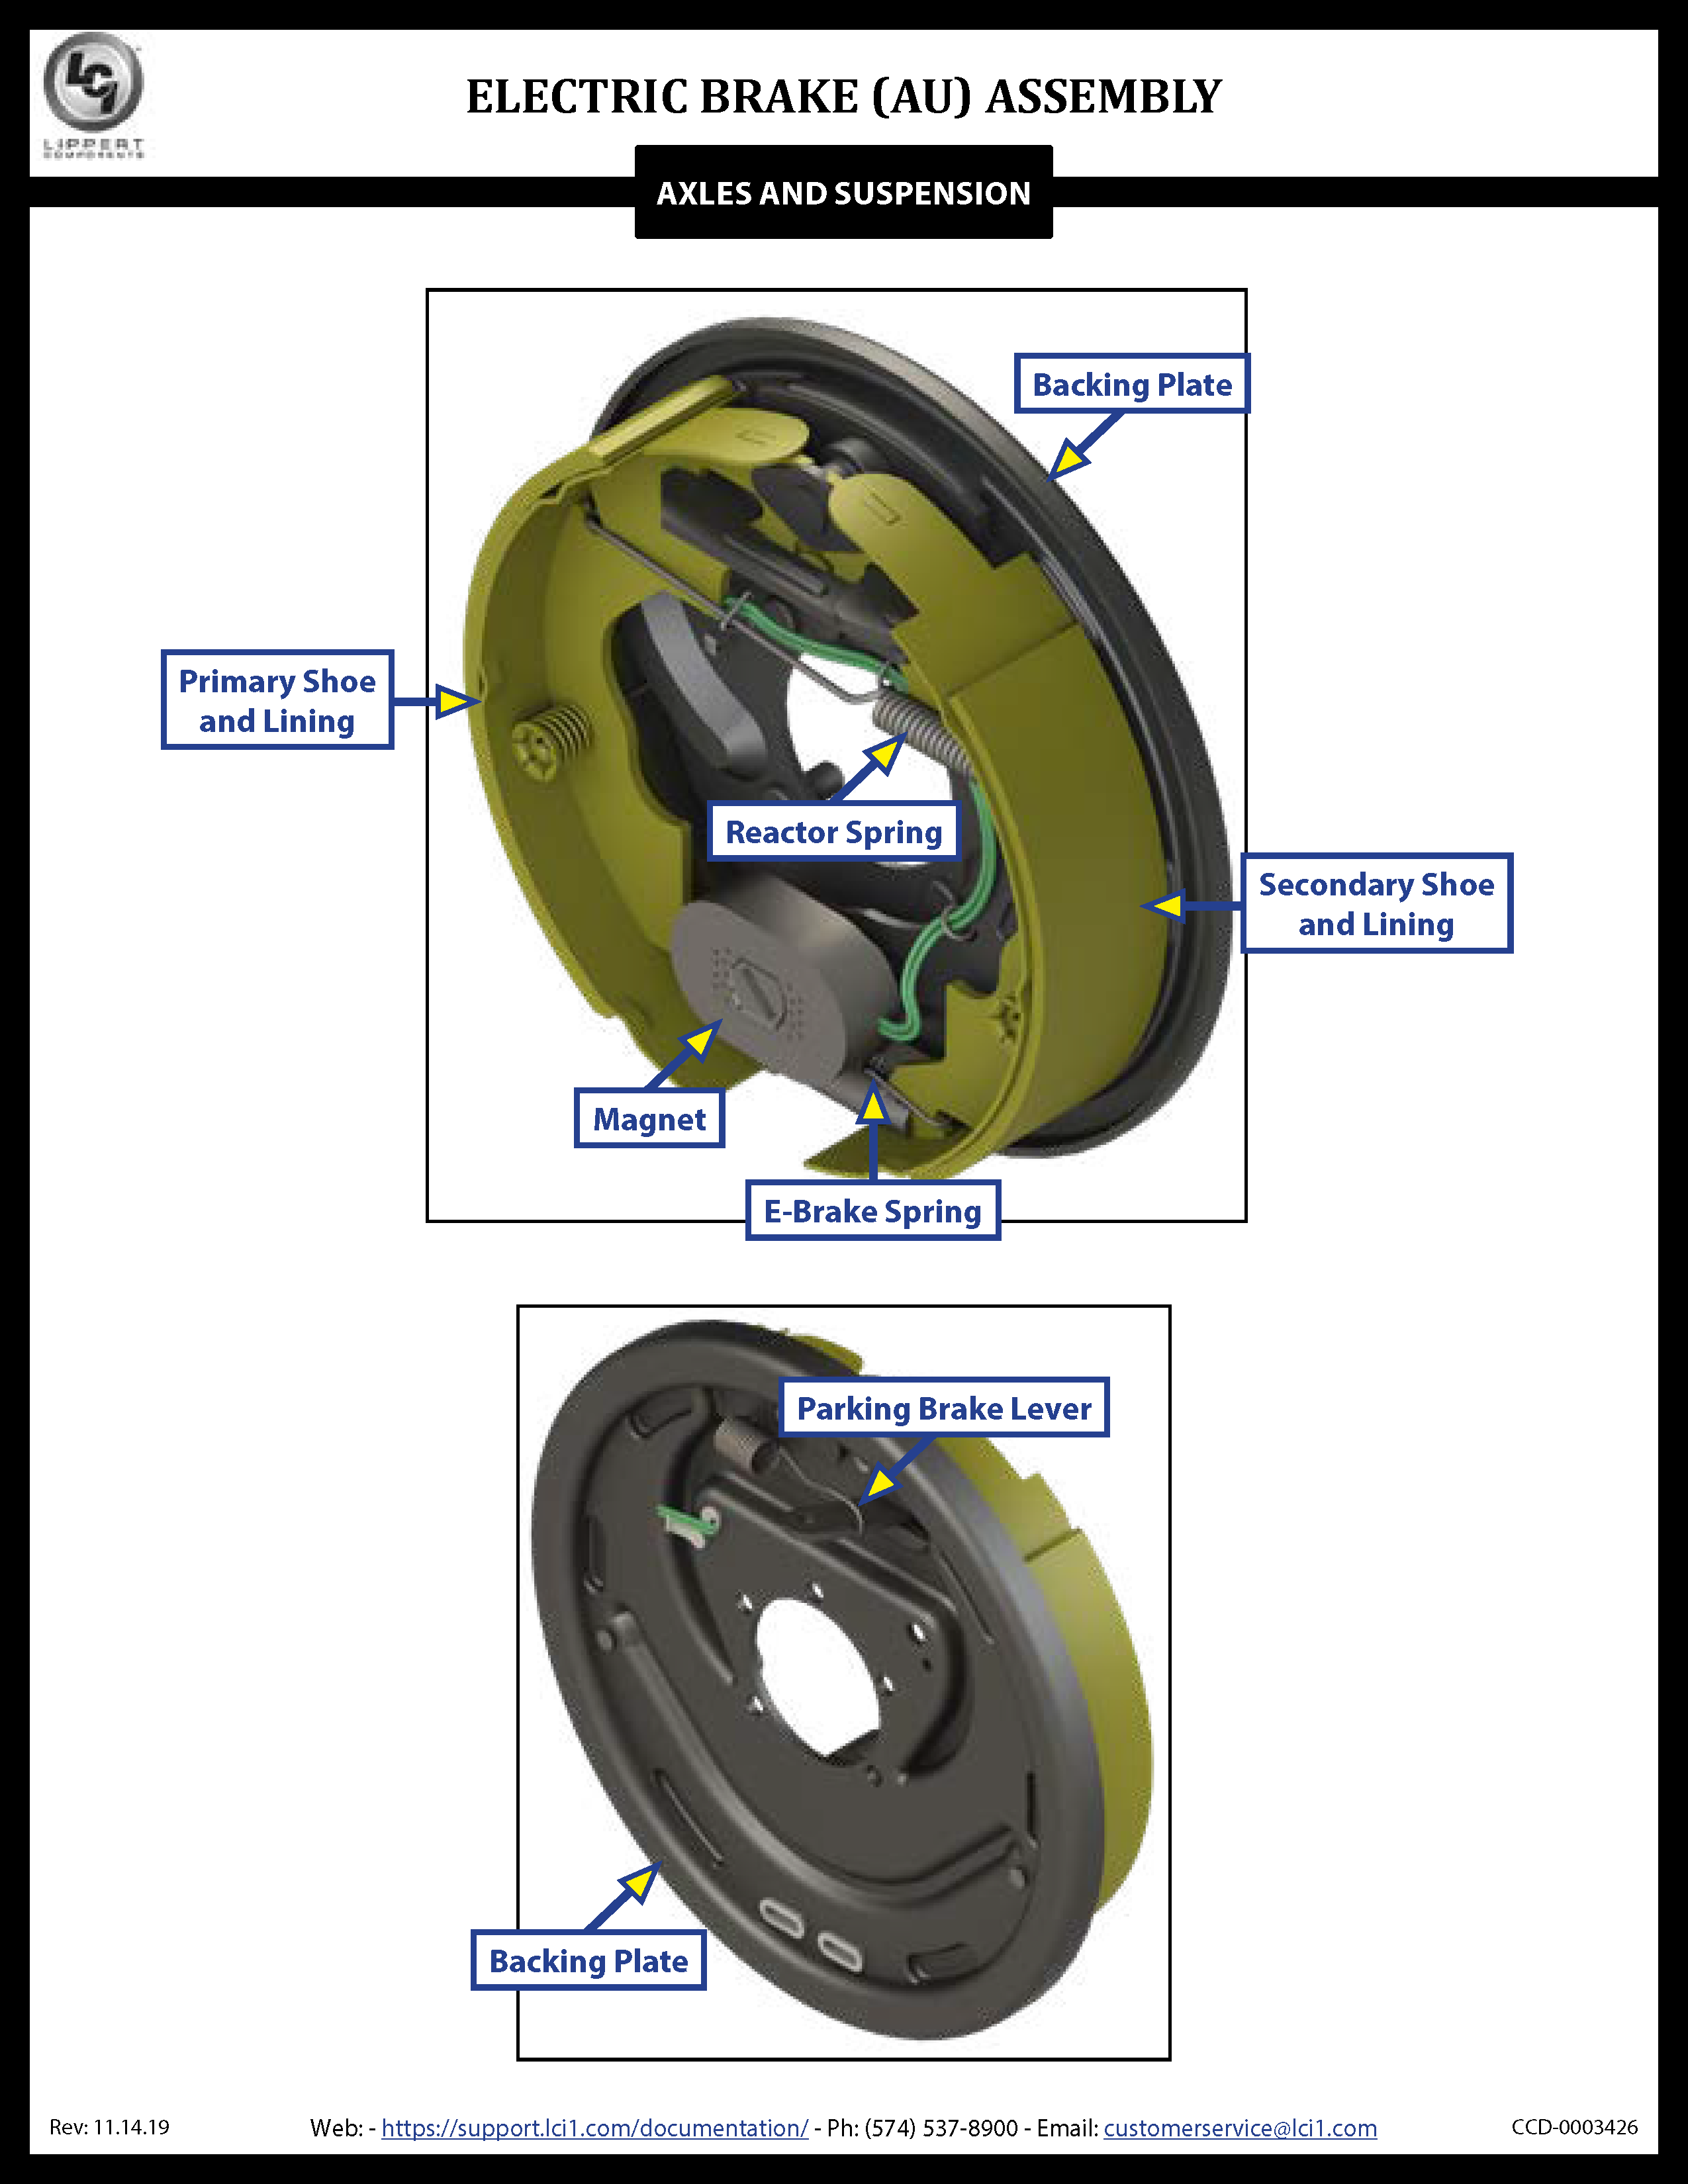 Electric Brakes (AU) Assembly